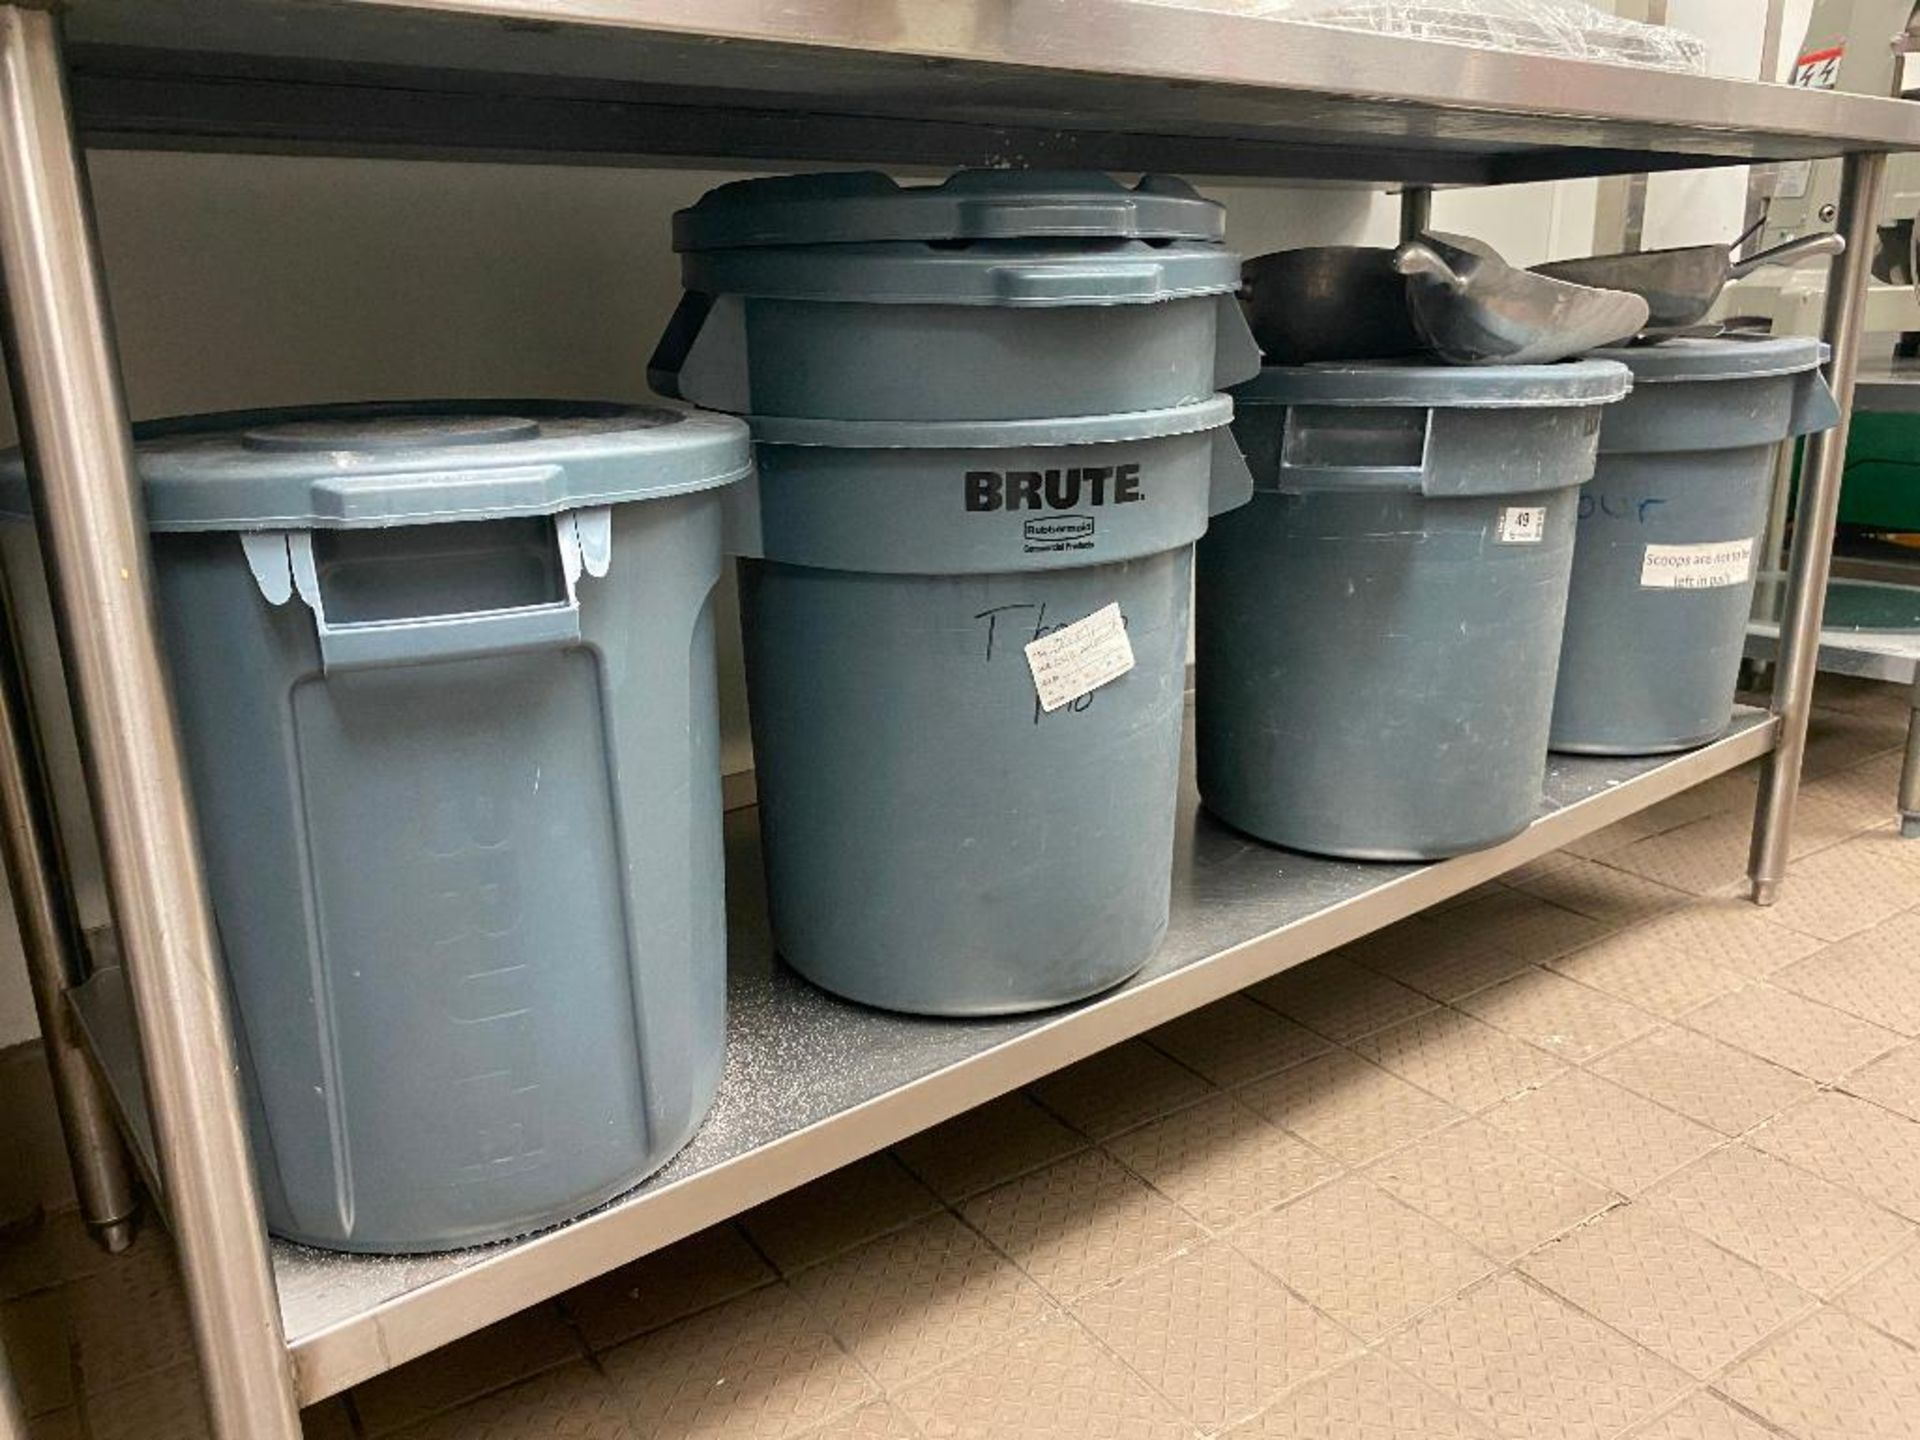 LOT OF (5) RUBBERMAID BRUTE 10 GALLON BIN & (4) ASSORTED SIZE FLOUR SCOOPS - Image 2 of 2